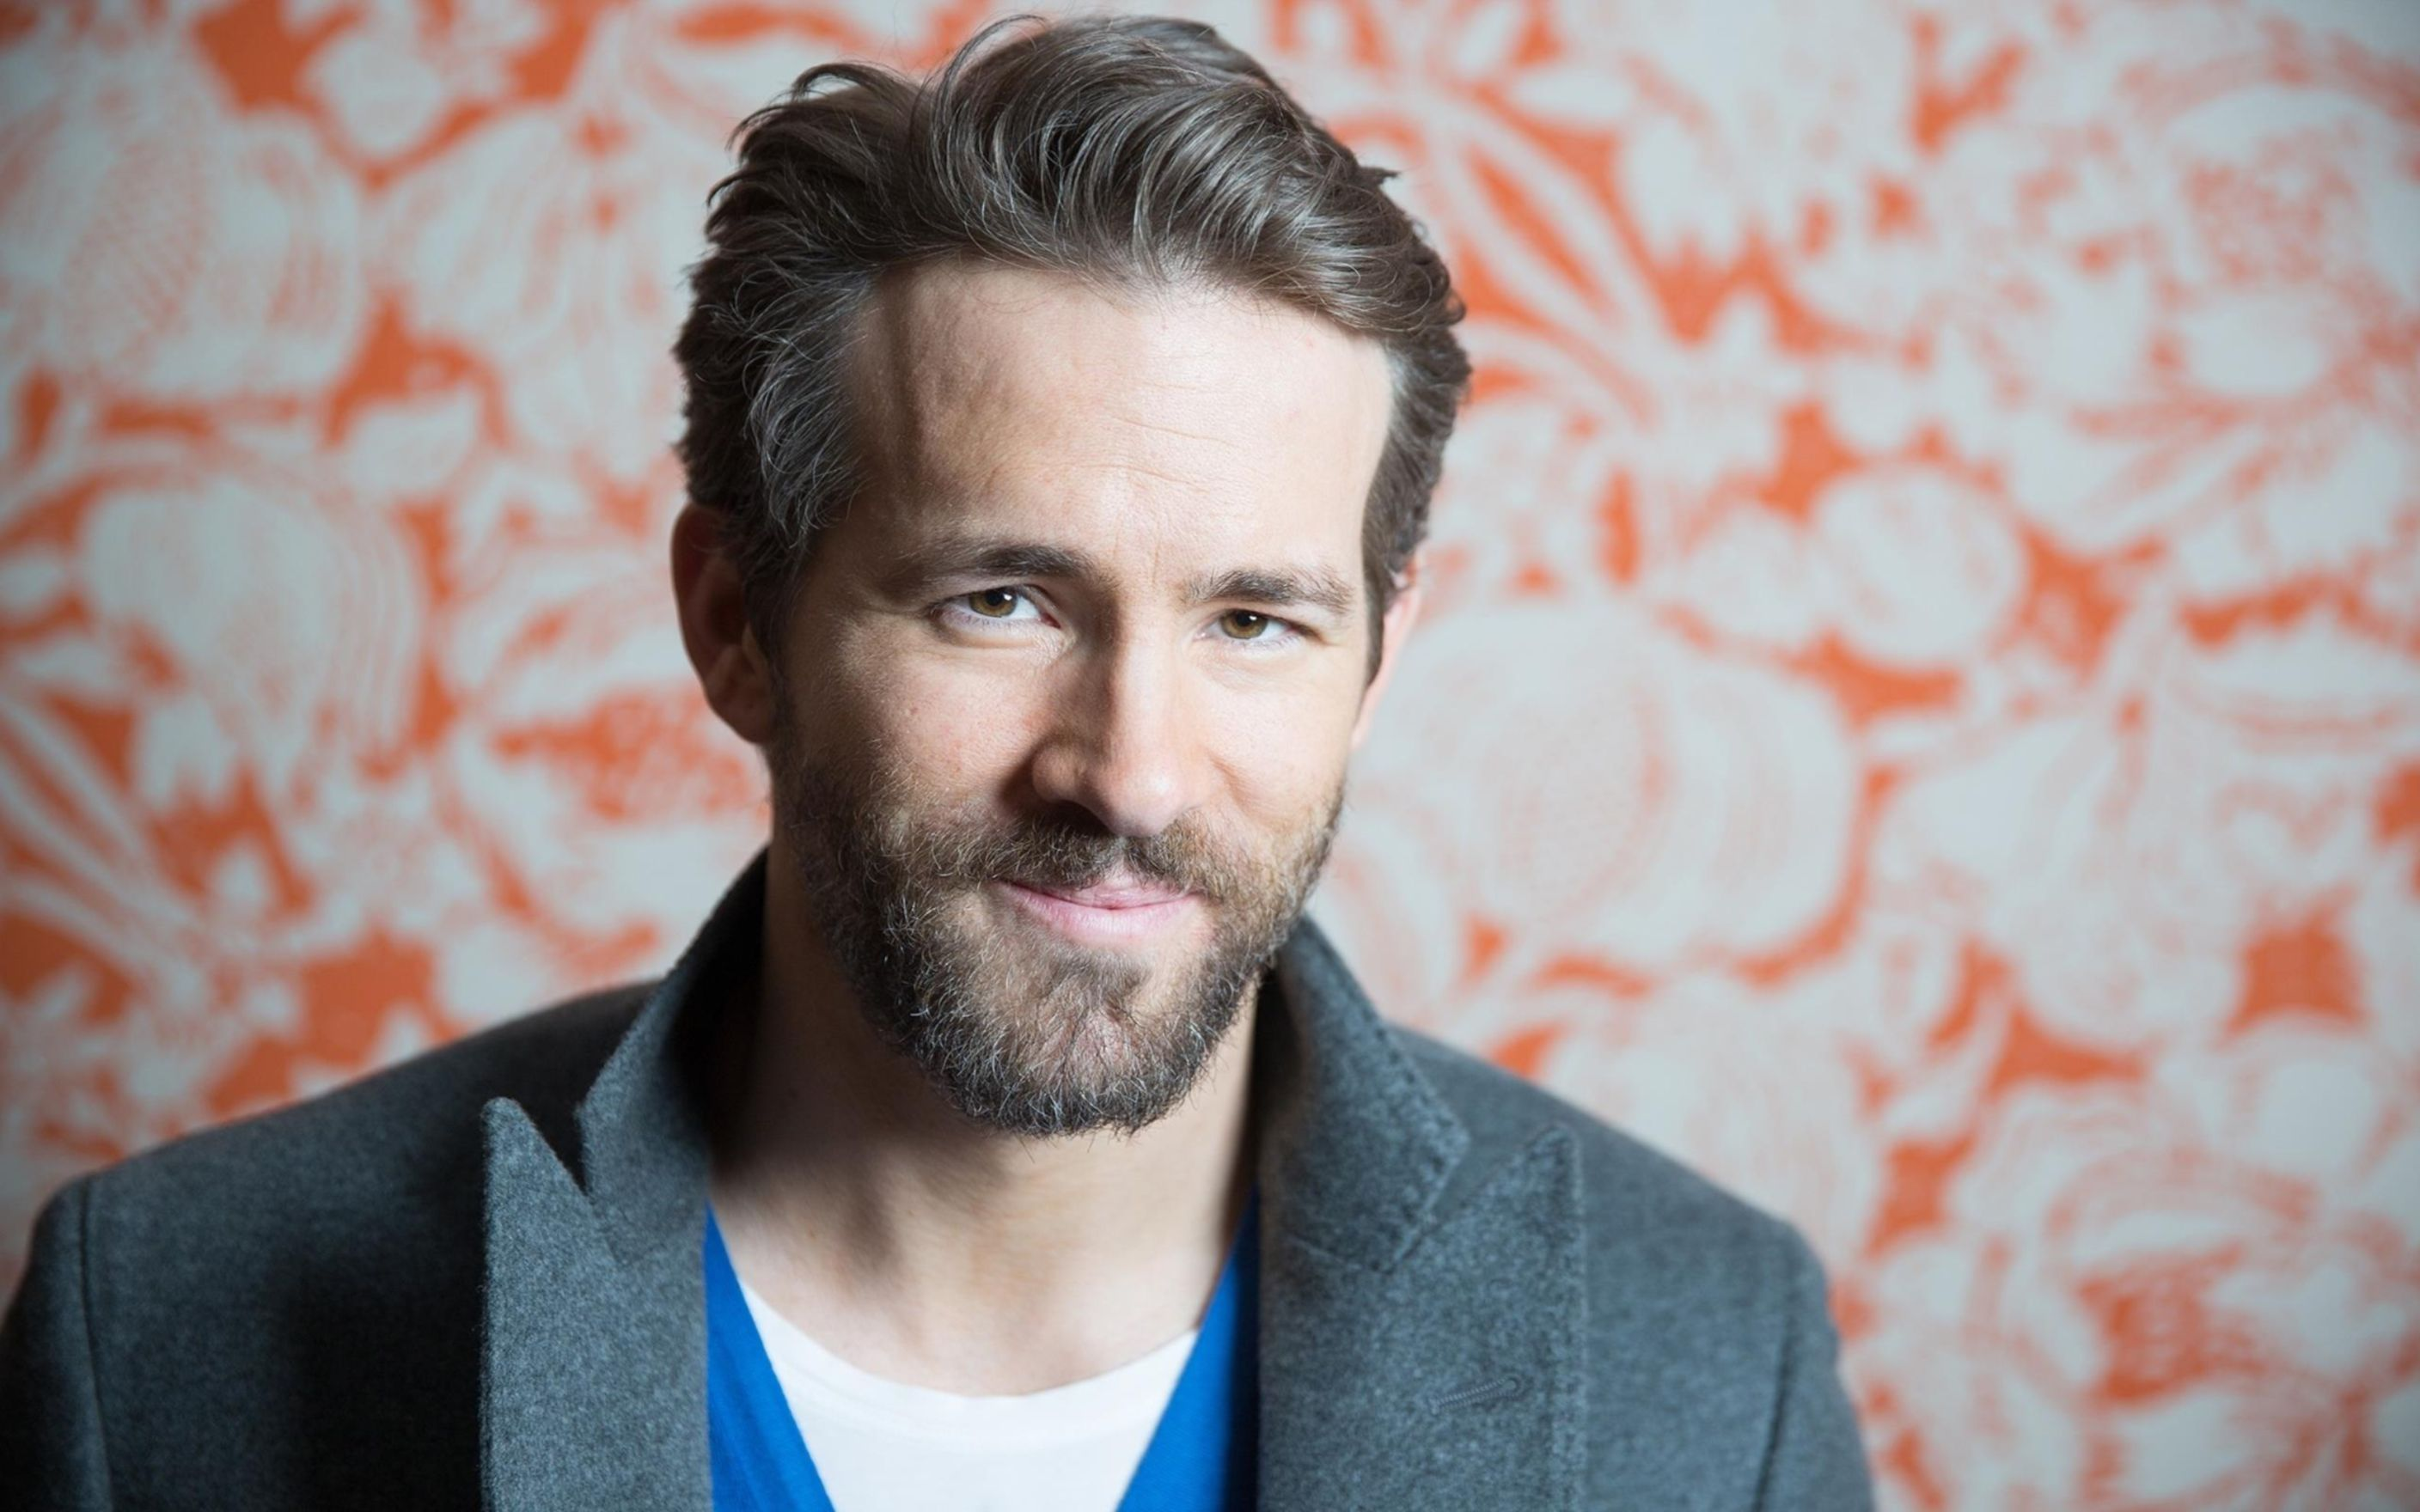 Download free HD Ryan Reynolds 1 Wallpaper, image